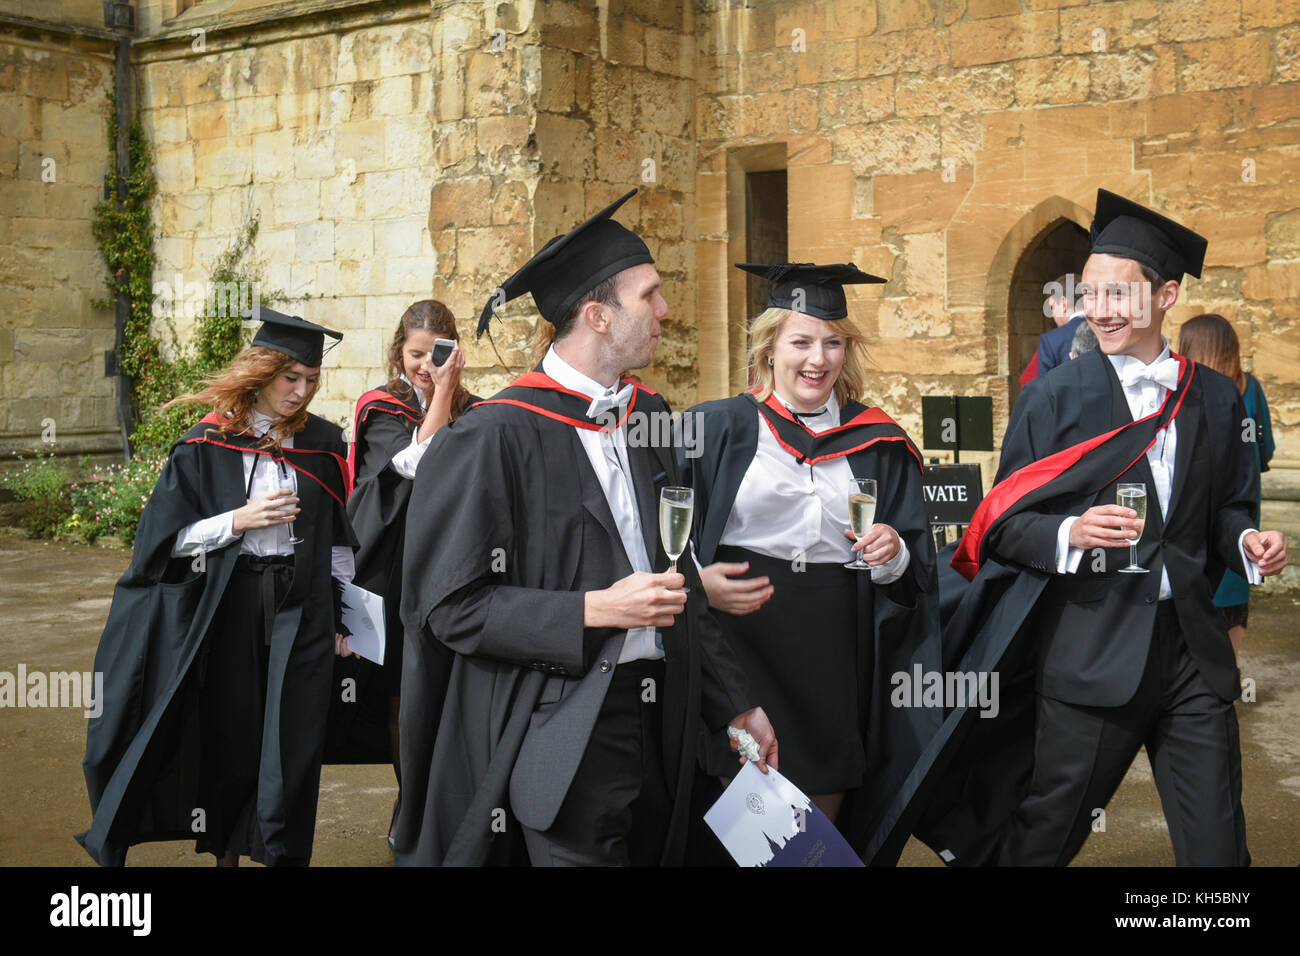 Newly graduated Oxford students celebrate with champagne in traditional 'sub fusc' gowns and hats - Stock Image